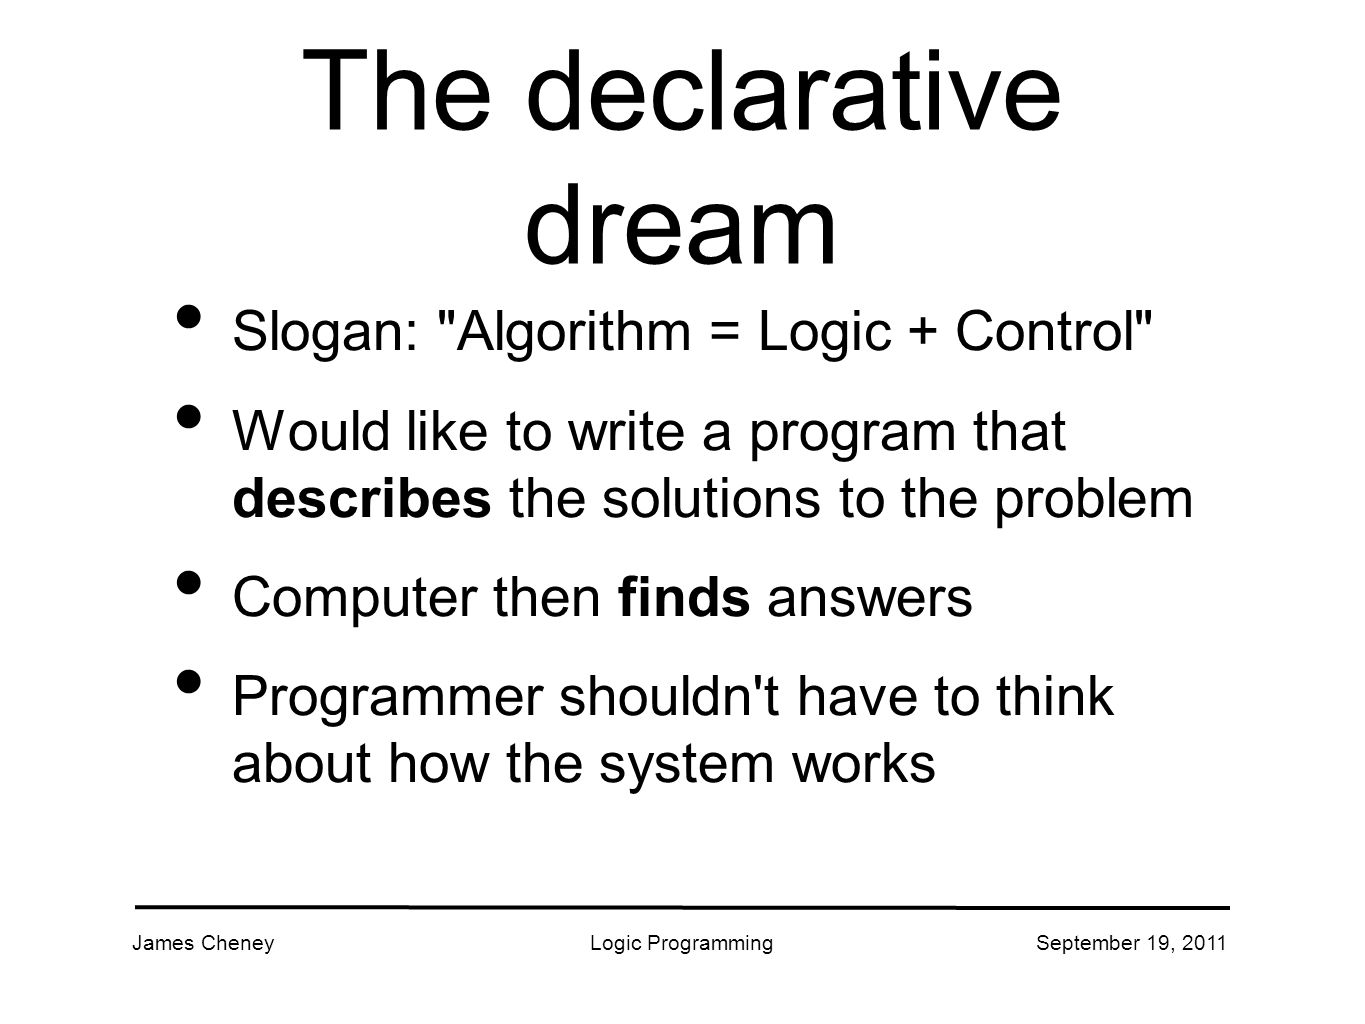 James CheneyLogic ProgrammingSeptember 19, 2011 The declarative dream Slogan: Algorithm = Logic + Control Would like to write a program that describes the solutions to the problem Computer then finds answers Programmer shouldn t have to think about how the system works